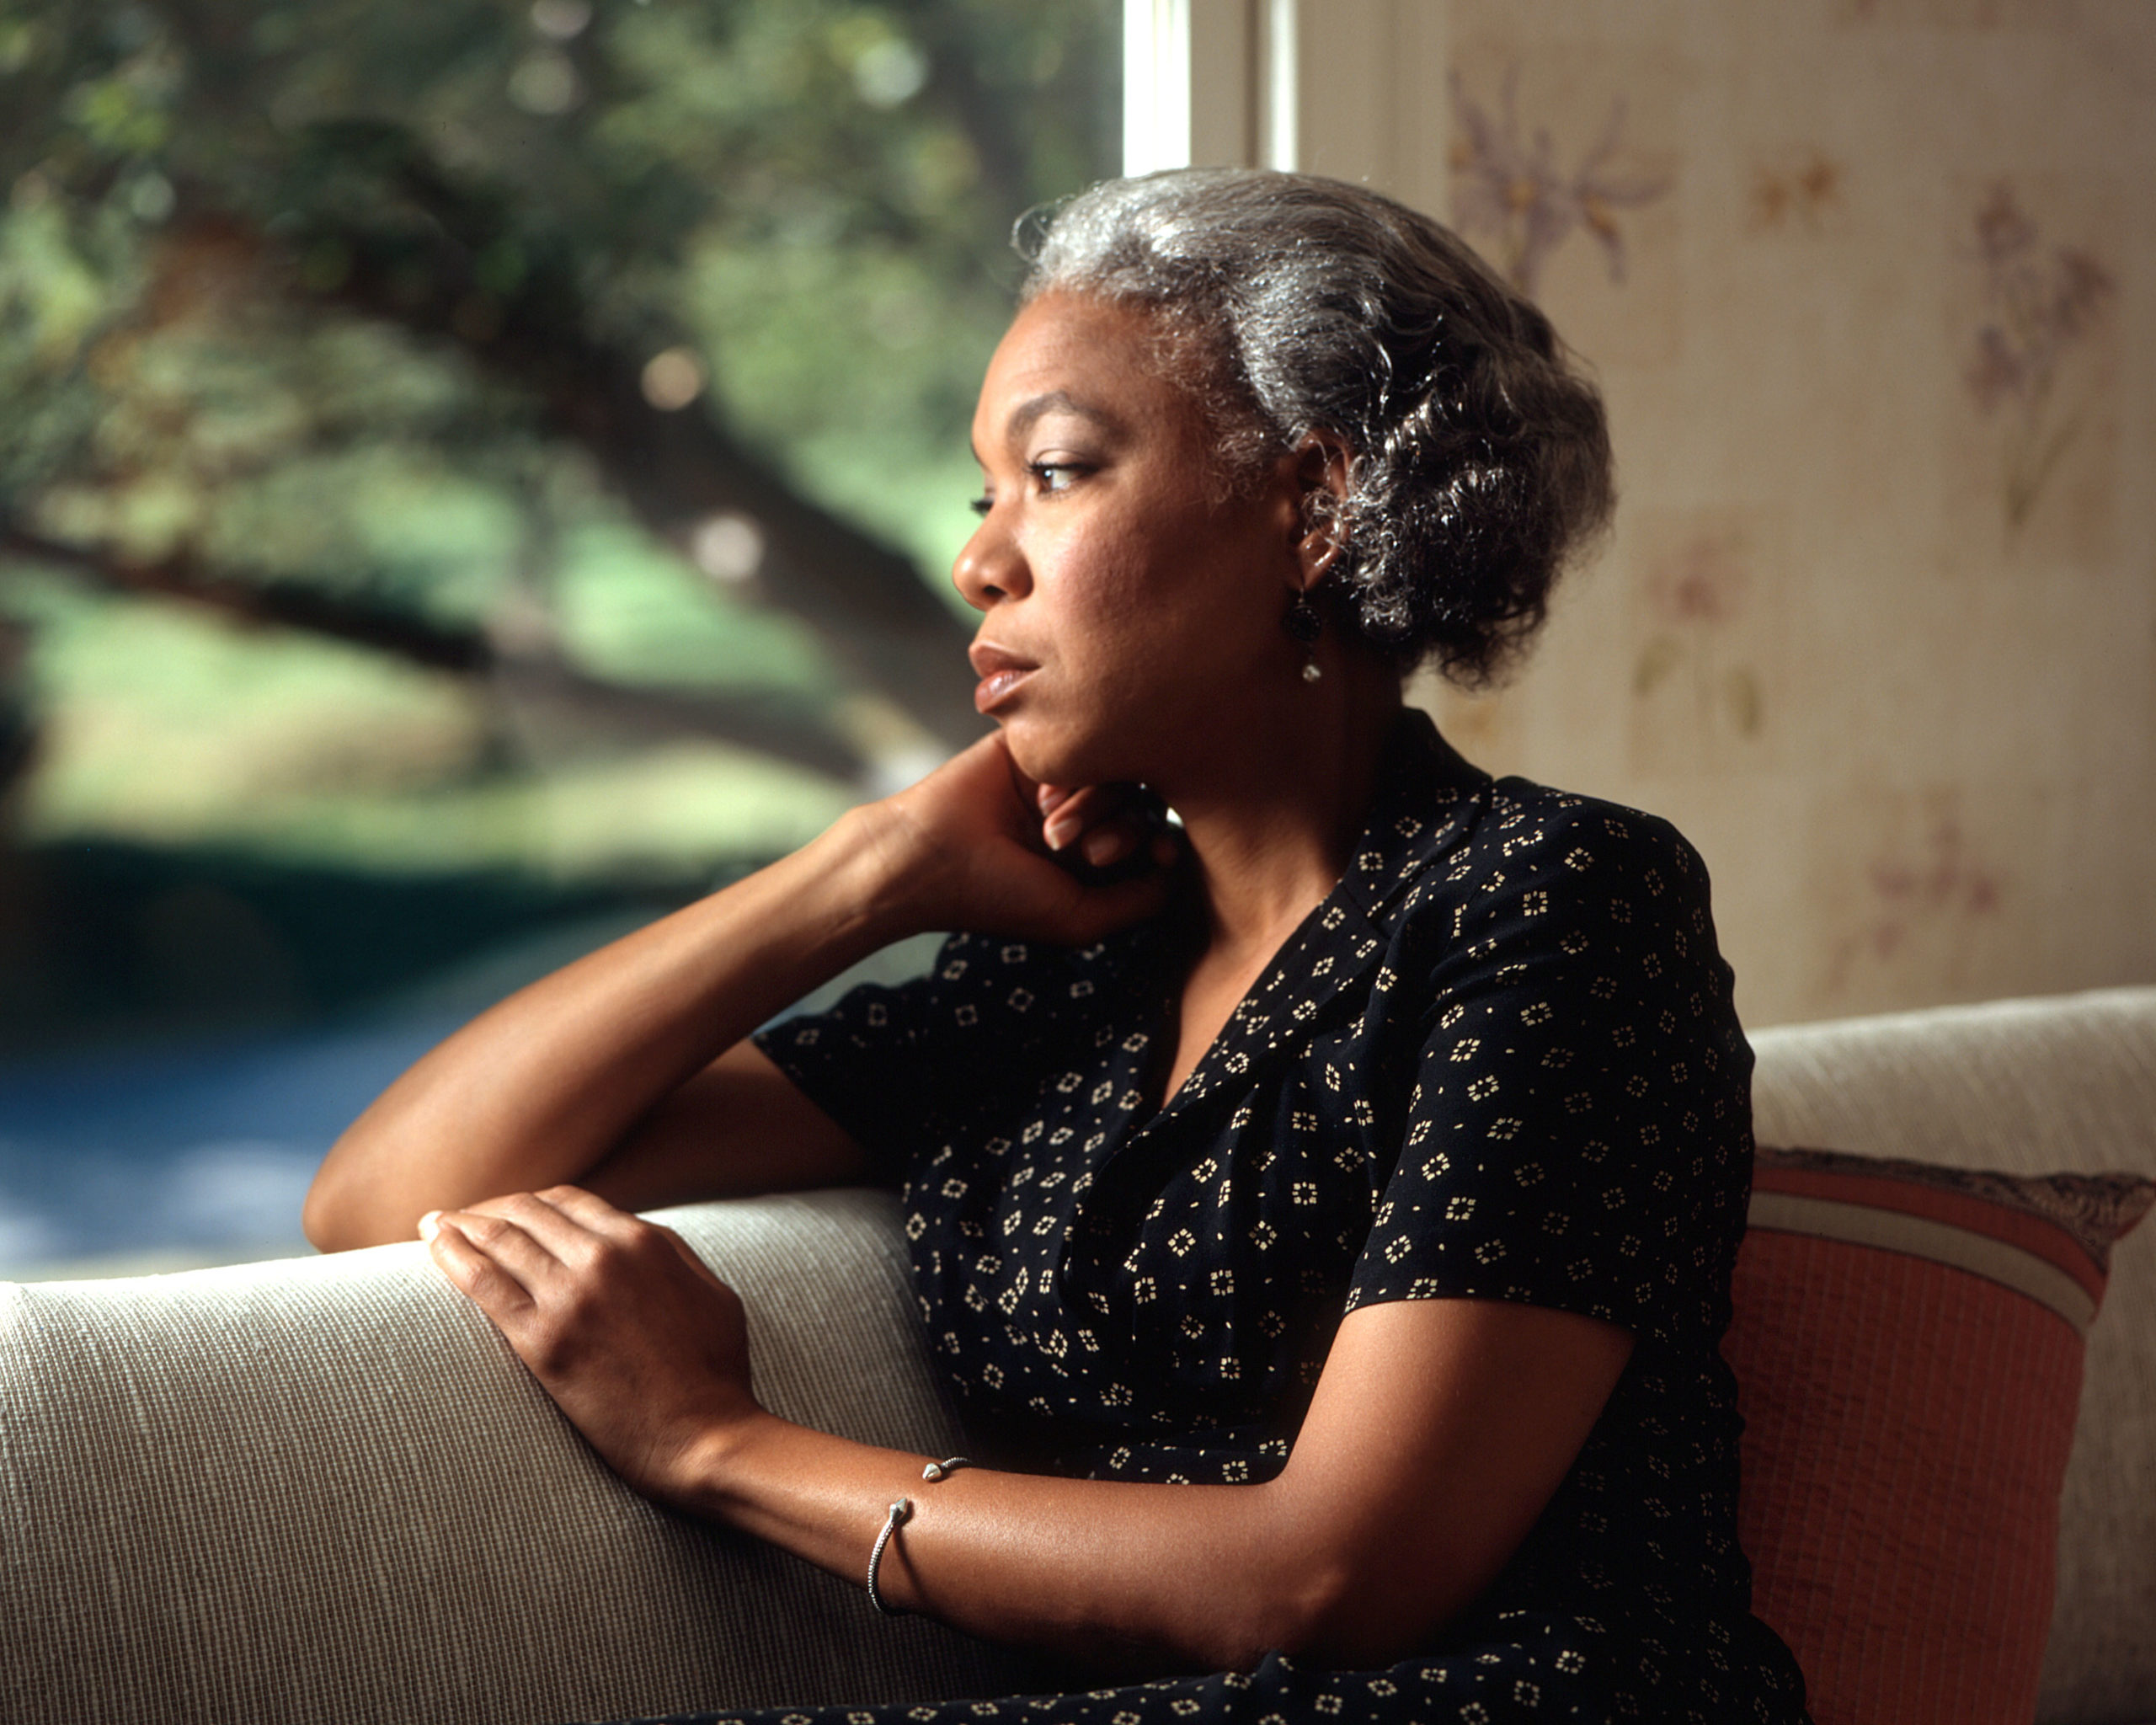 An African-American woman looking out a window